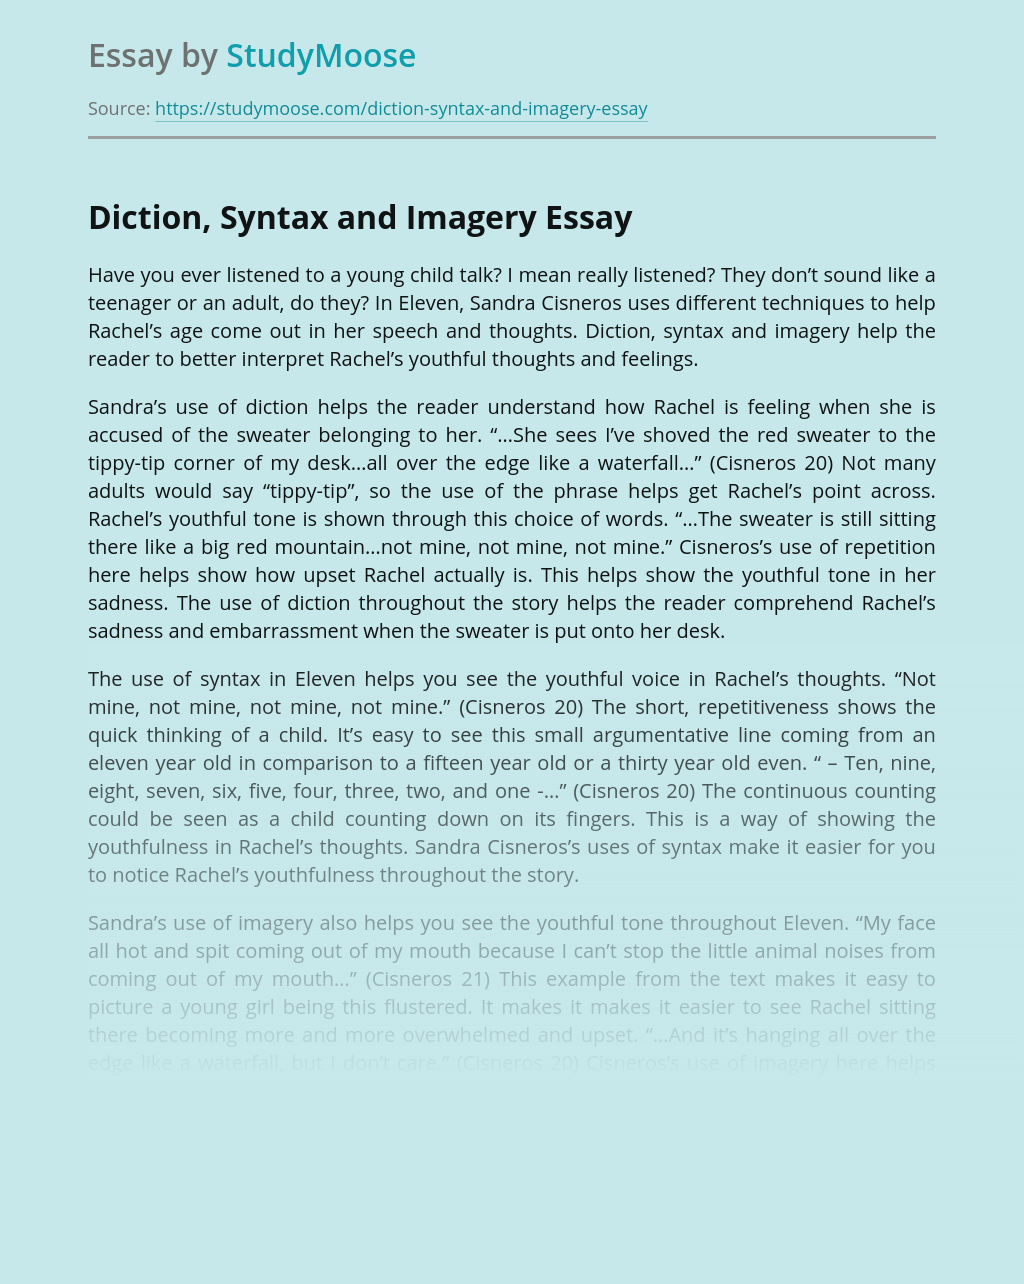 Diction, Syntax and Imagery